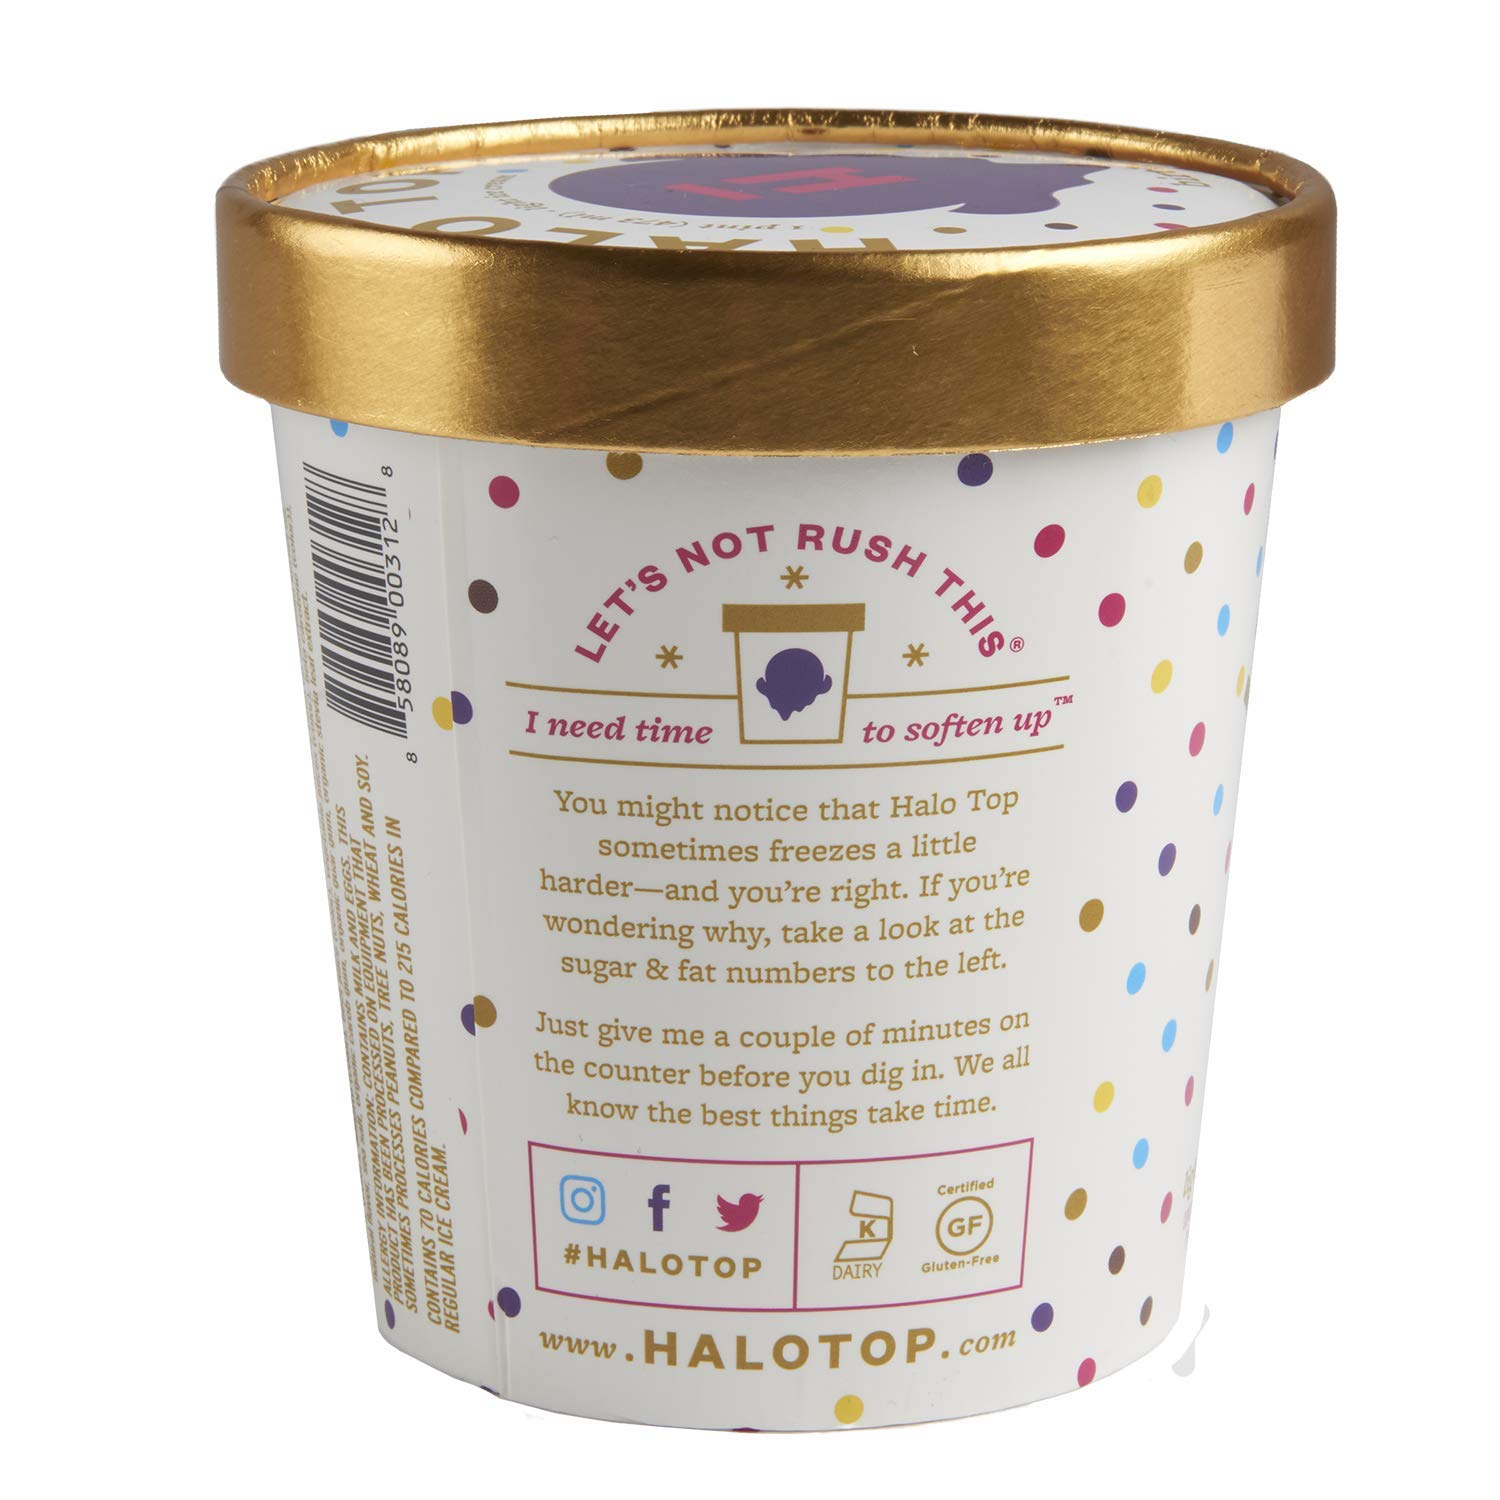 Halo Top Light Ice Cream Birthday Cake 16 Oz Frozen Amazon Grocery Gourmet Food